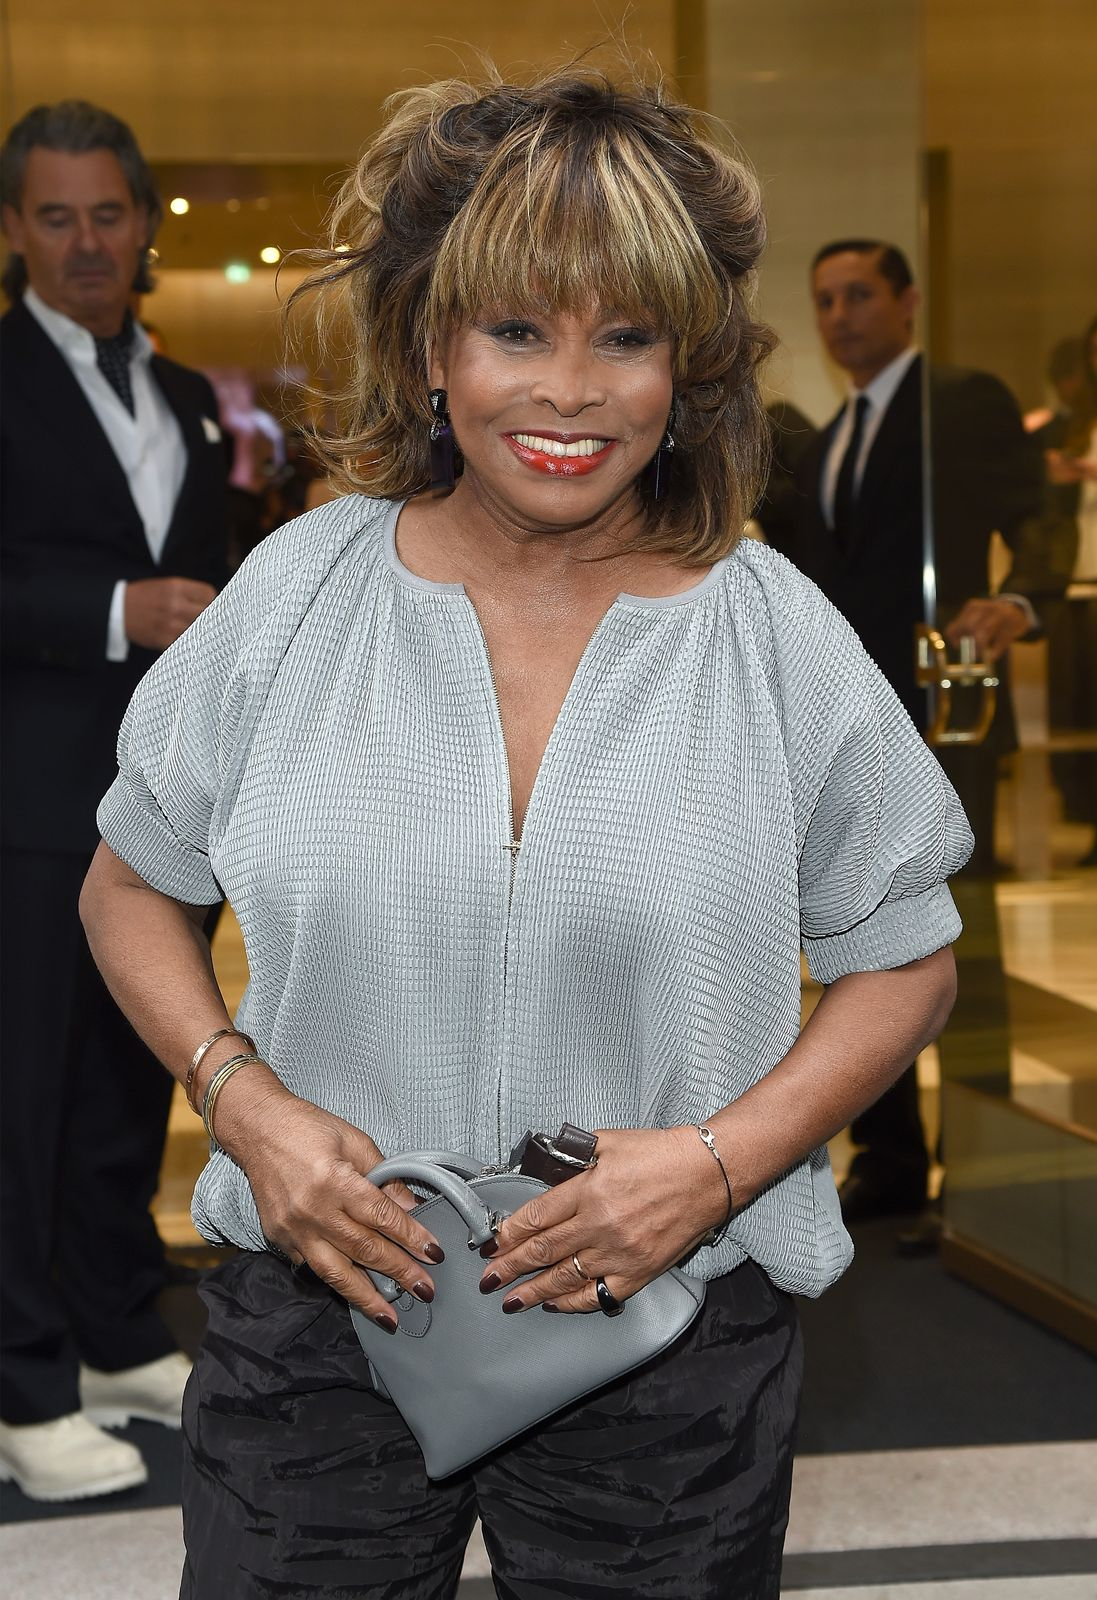 Tina Turner at the Giorgio Armani 40th Anniversary Boutique Cocktail Reception on April 29, 2015, in Milan, Italy | Photo: Venturelli/Getty Images